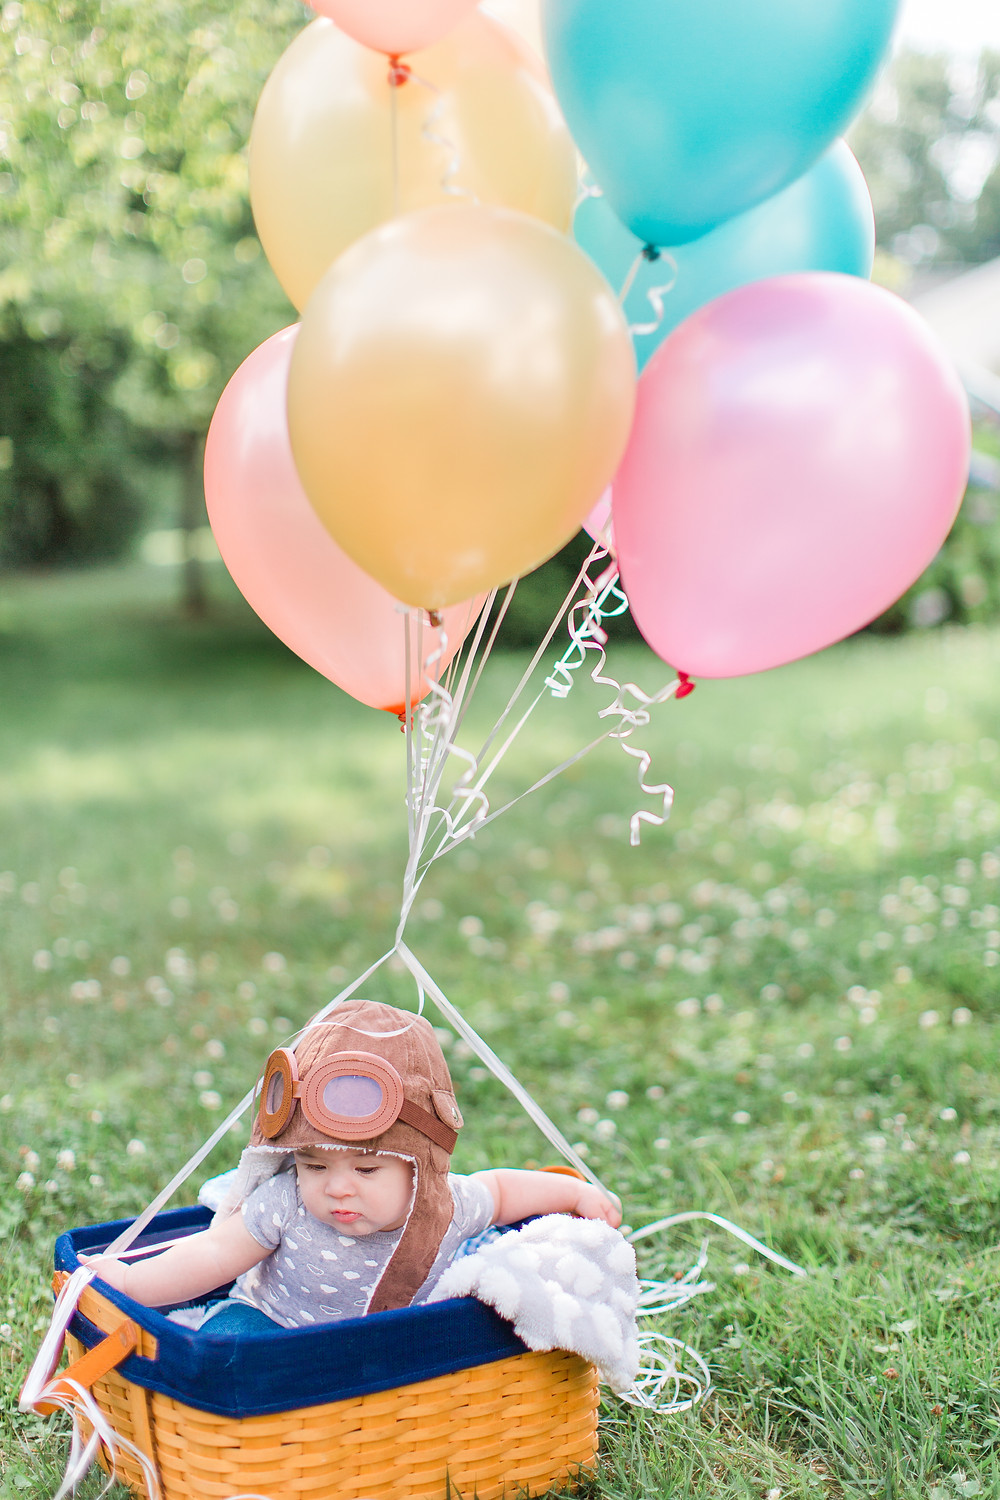 Westminster Maryland, outdoor photo session, baby in a basket, baby aviators, balloon inspired photoshoot